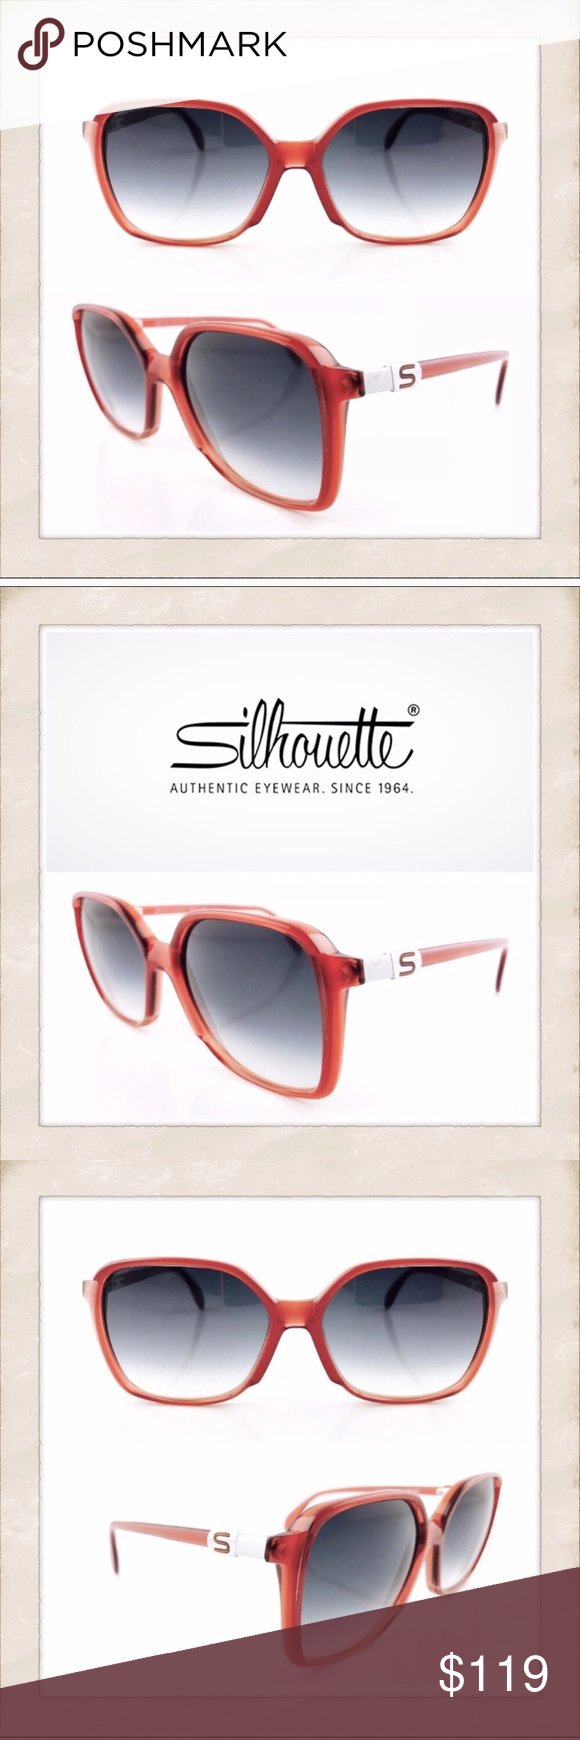 196f55d248 Vintage silhouette sunglasses silhouette png 580x1740 Silhouette glasses  company